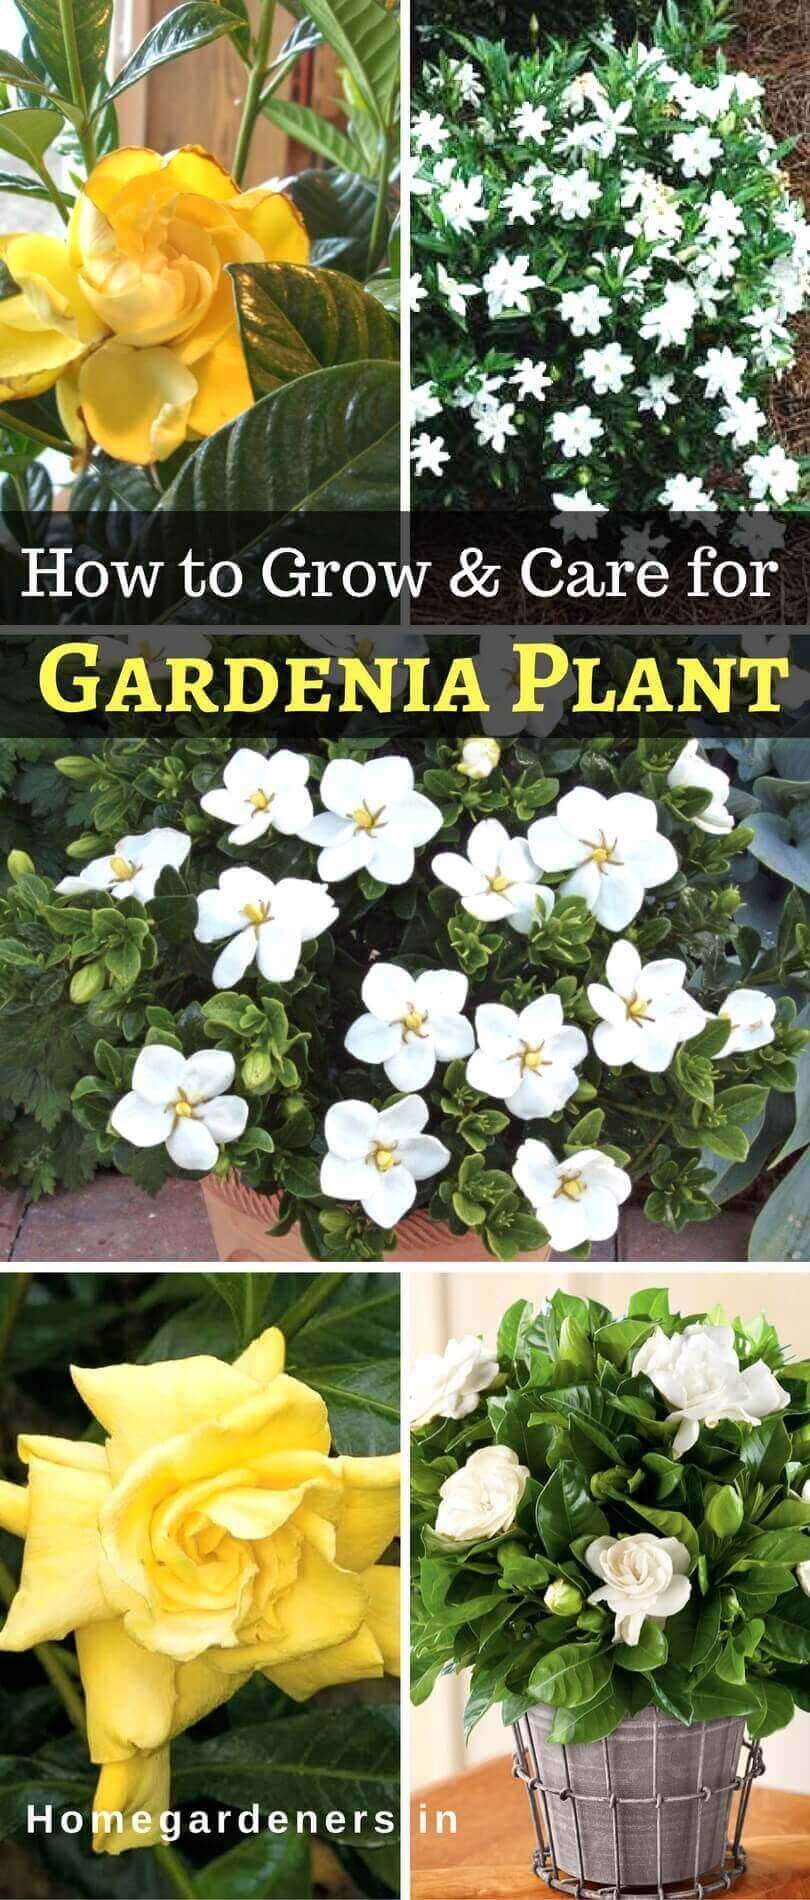 Gardenia Plant - How to Care for Gardenia plant at Home and Garden